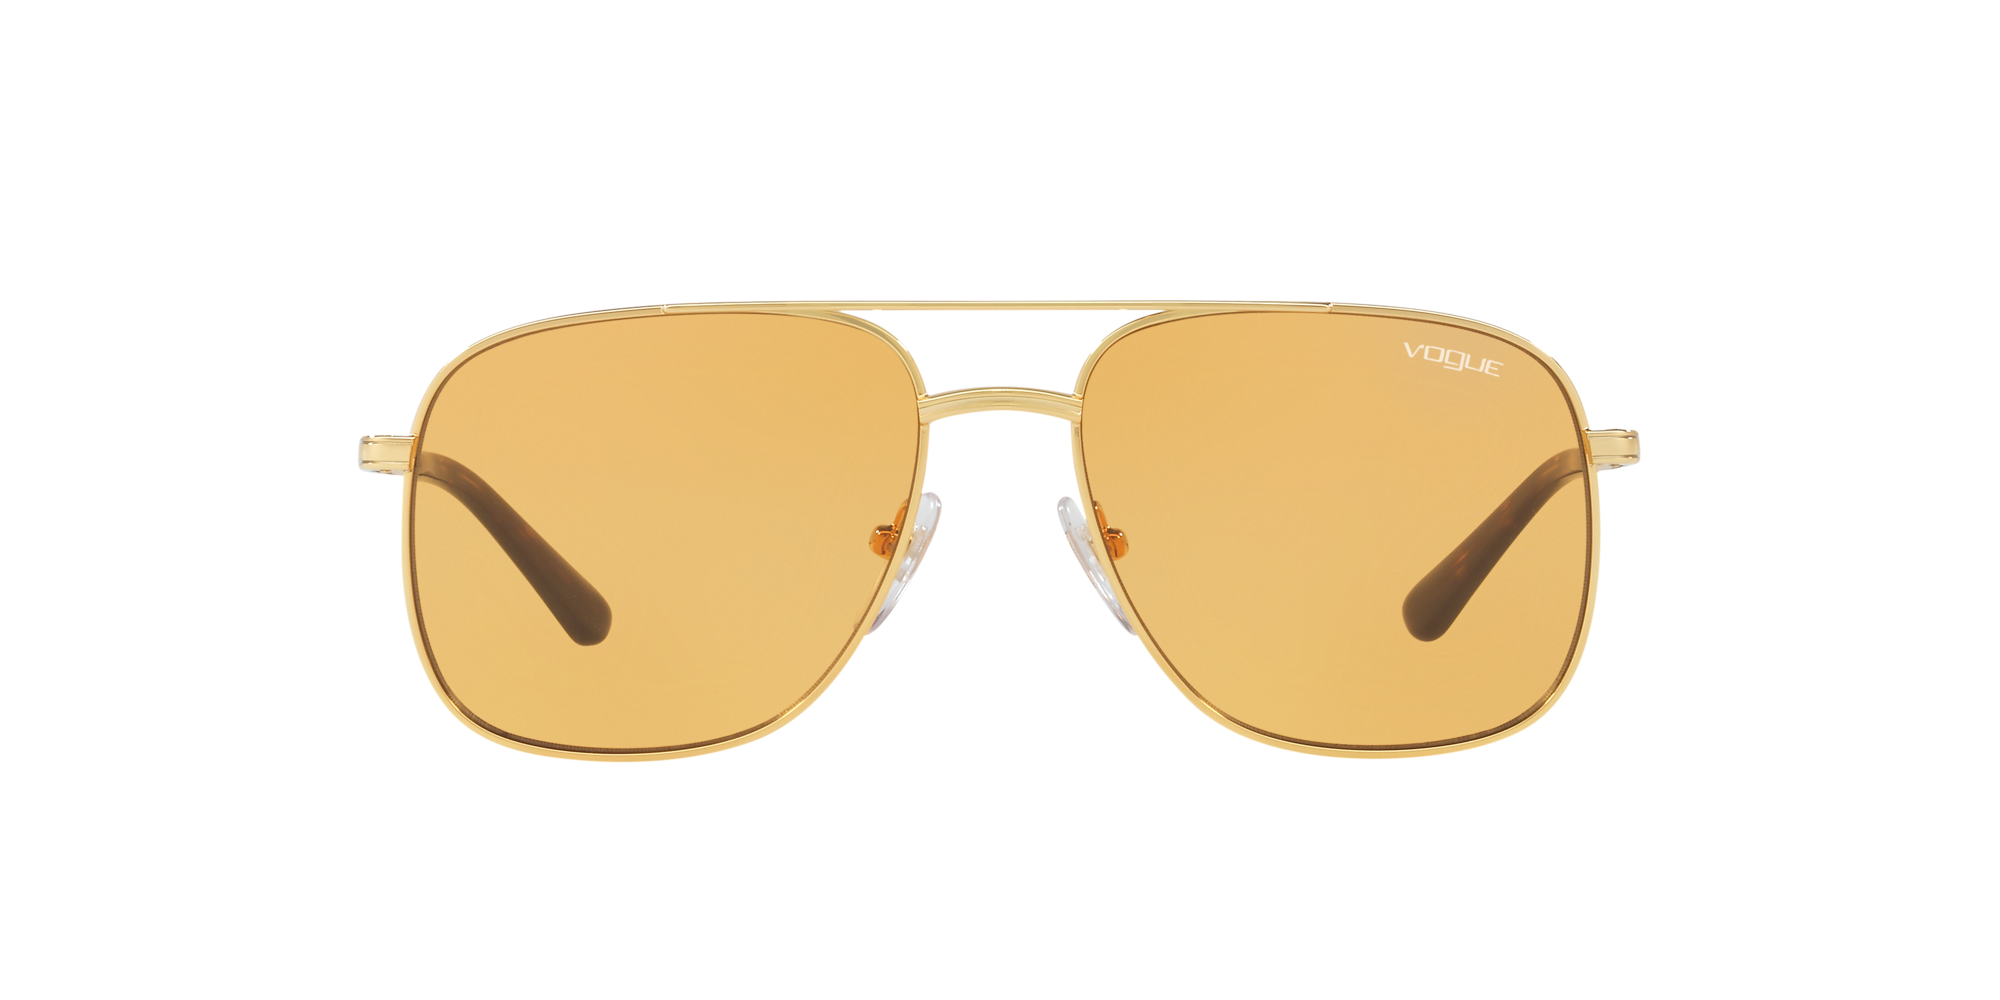 bcd9b27a50 ... gafas de sol VOGUE VO 4083S 280/7 BY GIGI HADID. 360° Product View 360°  Product View ...